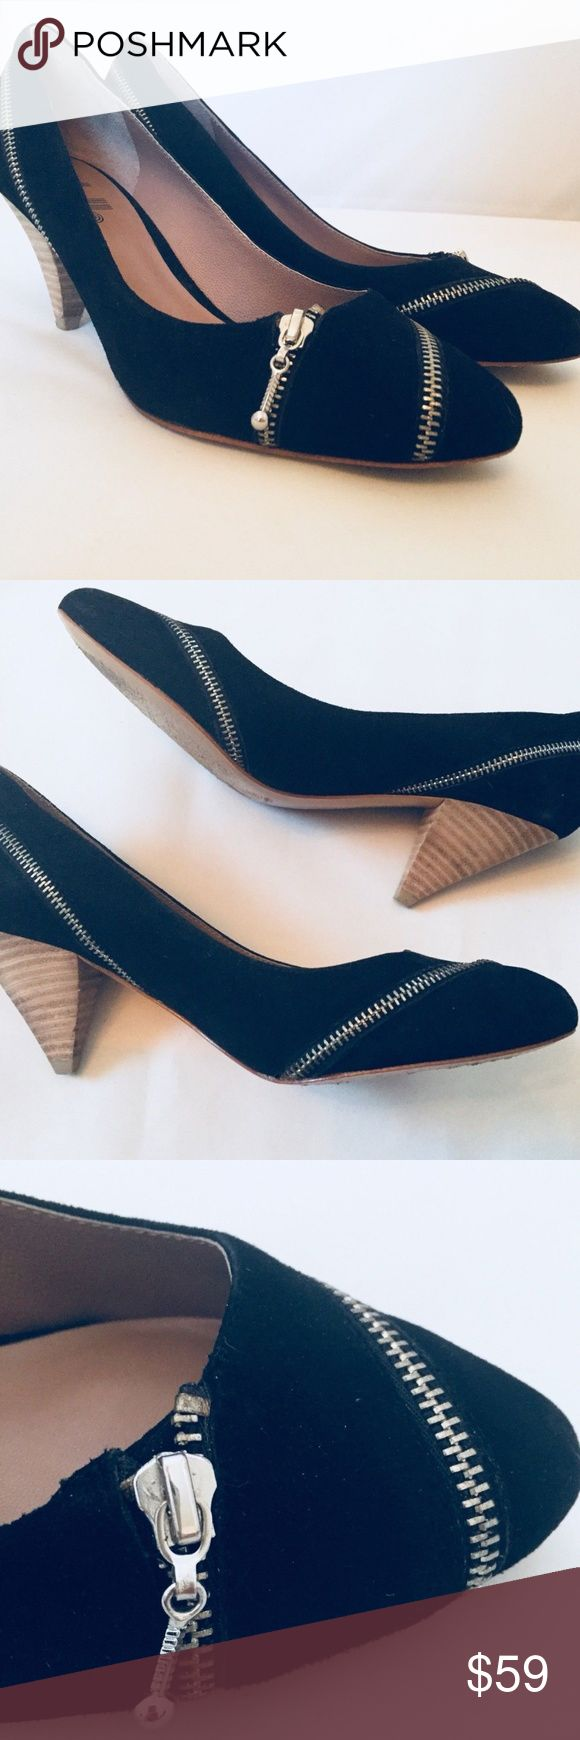 I just added this listing on Poshmark: Belle by Sigerson Morrison Pump Black Suede 6. #shopmycloset #poshmark #fashion #shopping #style #forsale #Belle by Sigerson Morrison #Shoes